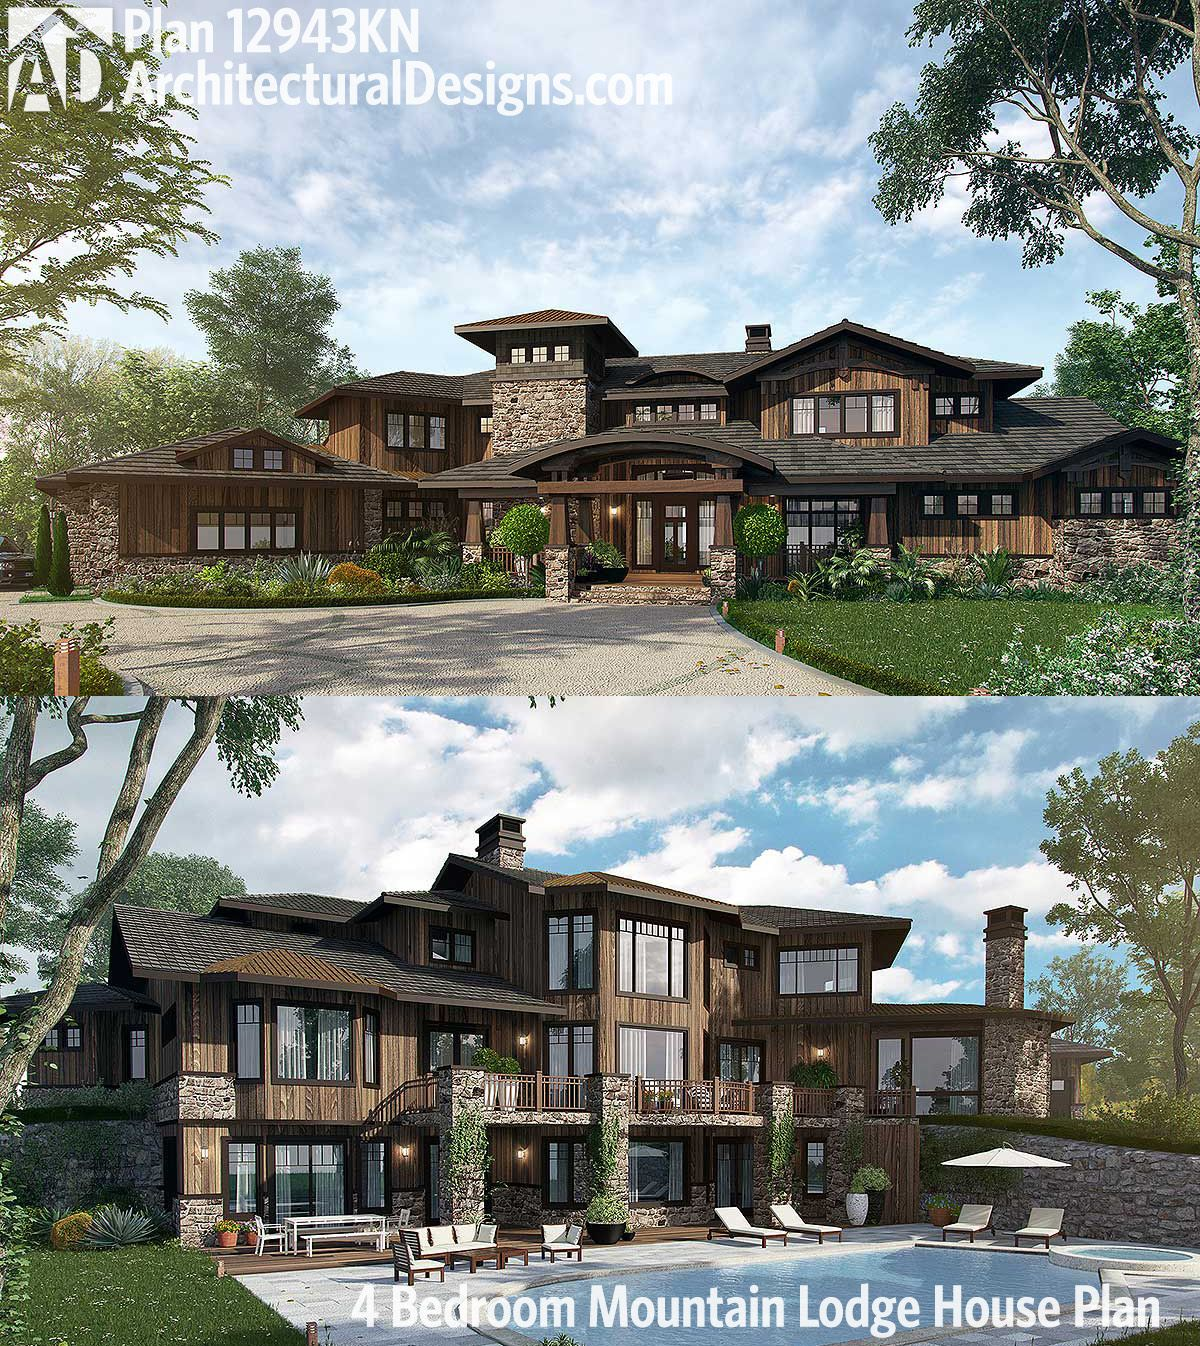 Plan 12943kn 4 bedroom mountain lodge house plan house for Mountain lodge floor plans